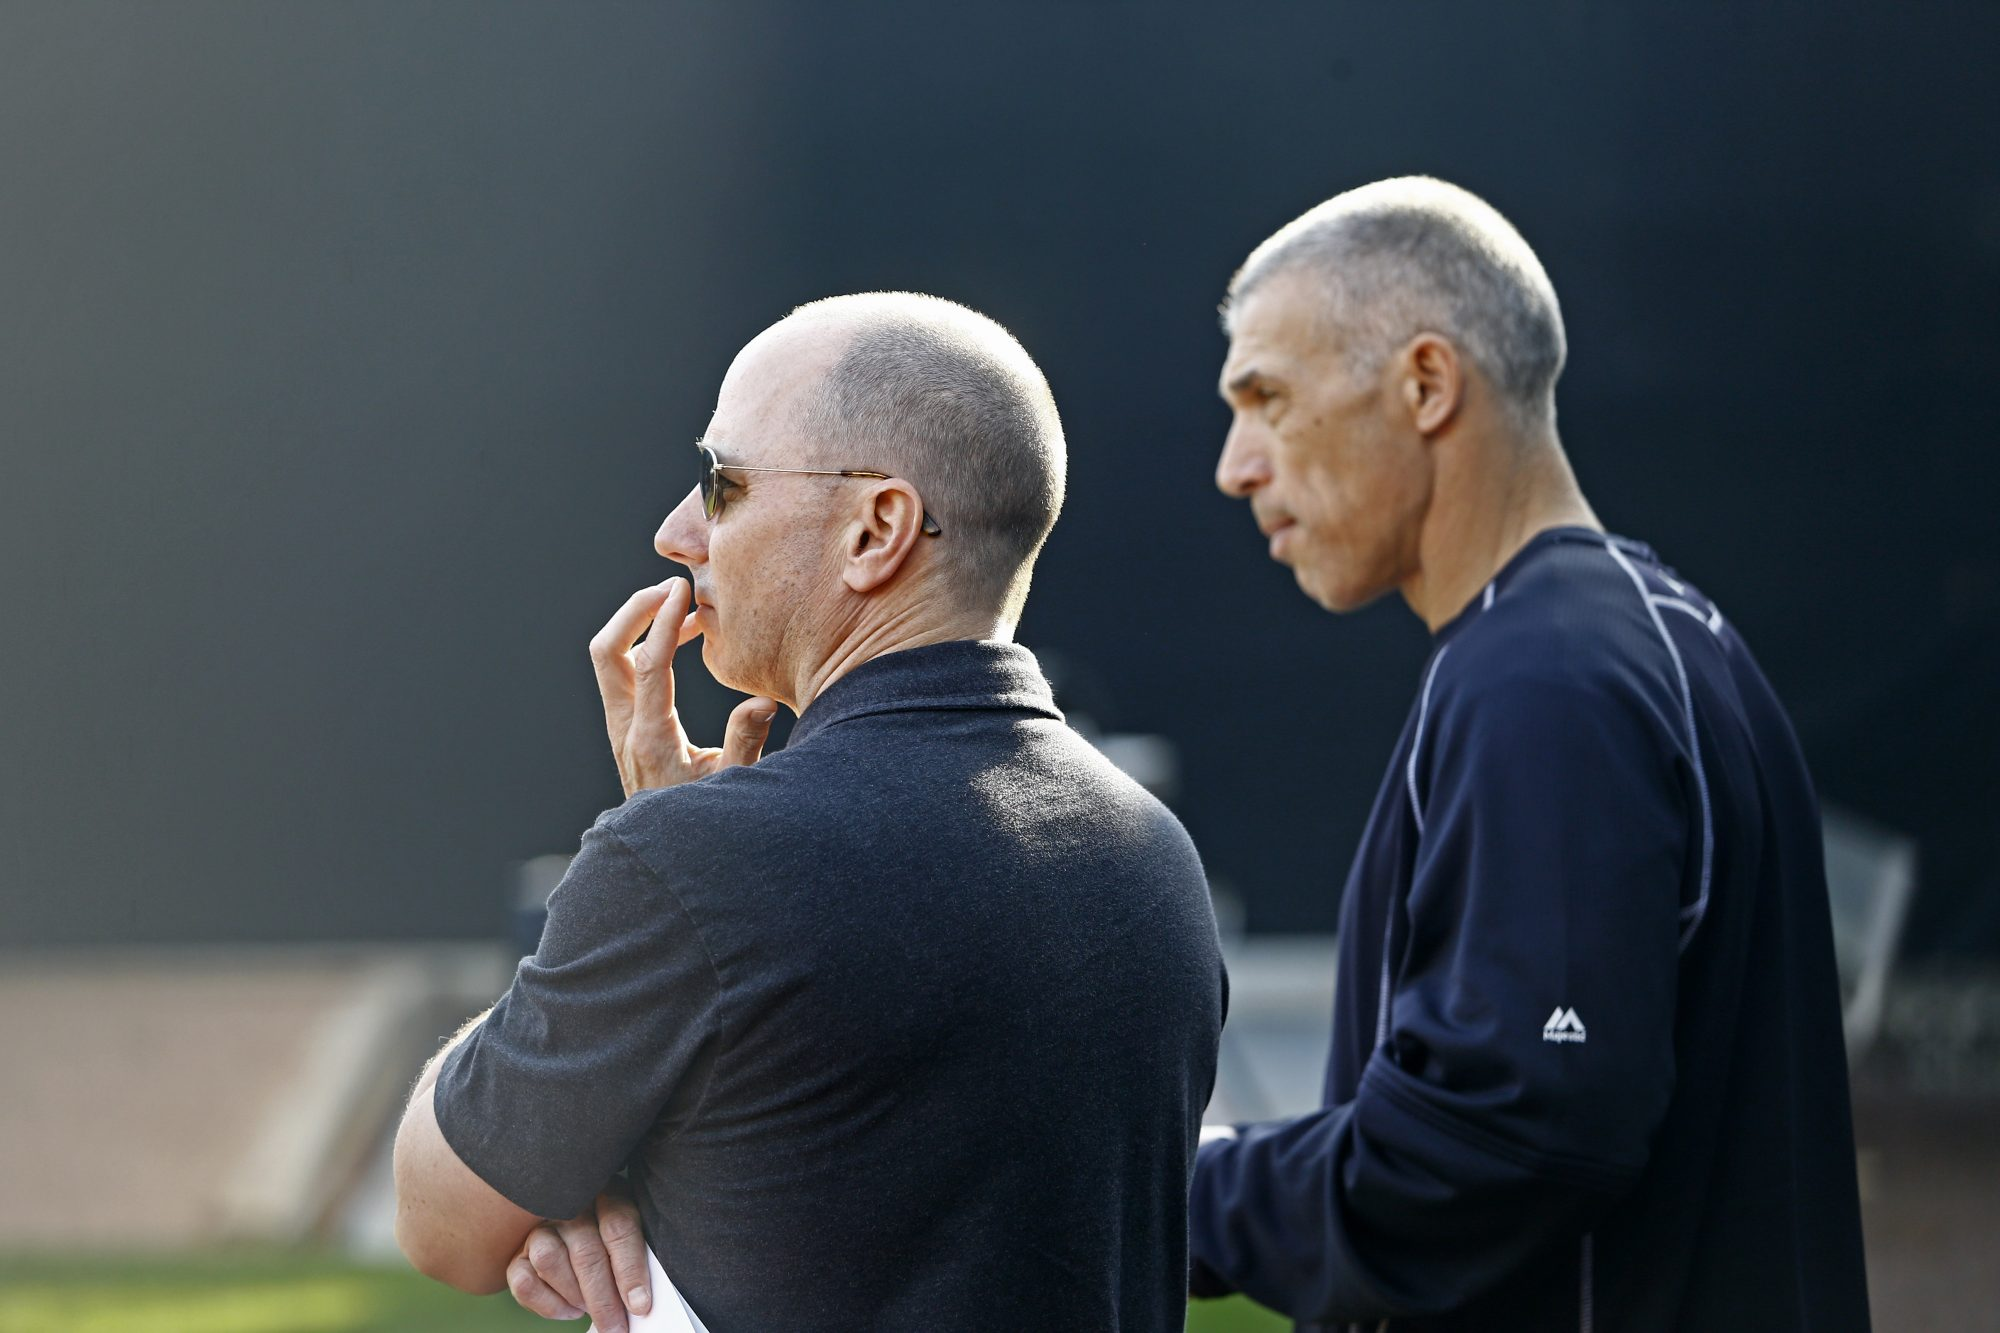 New York Yankees: A Thrilling Year Between Trade Deadlines